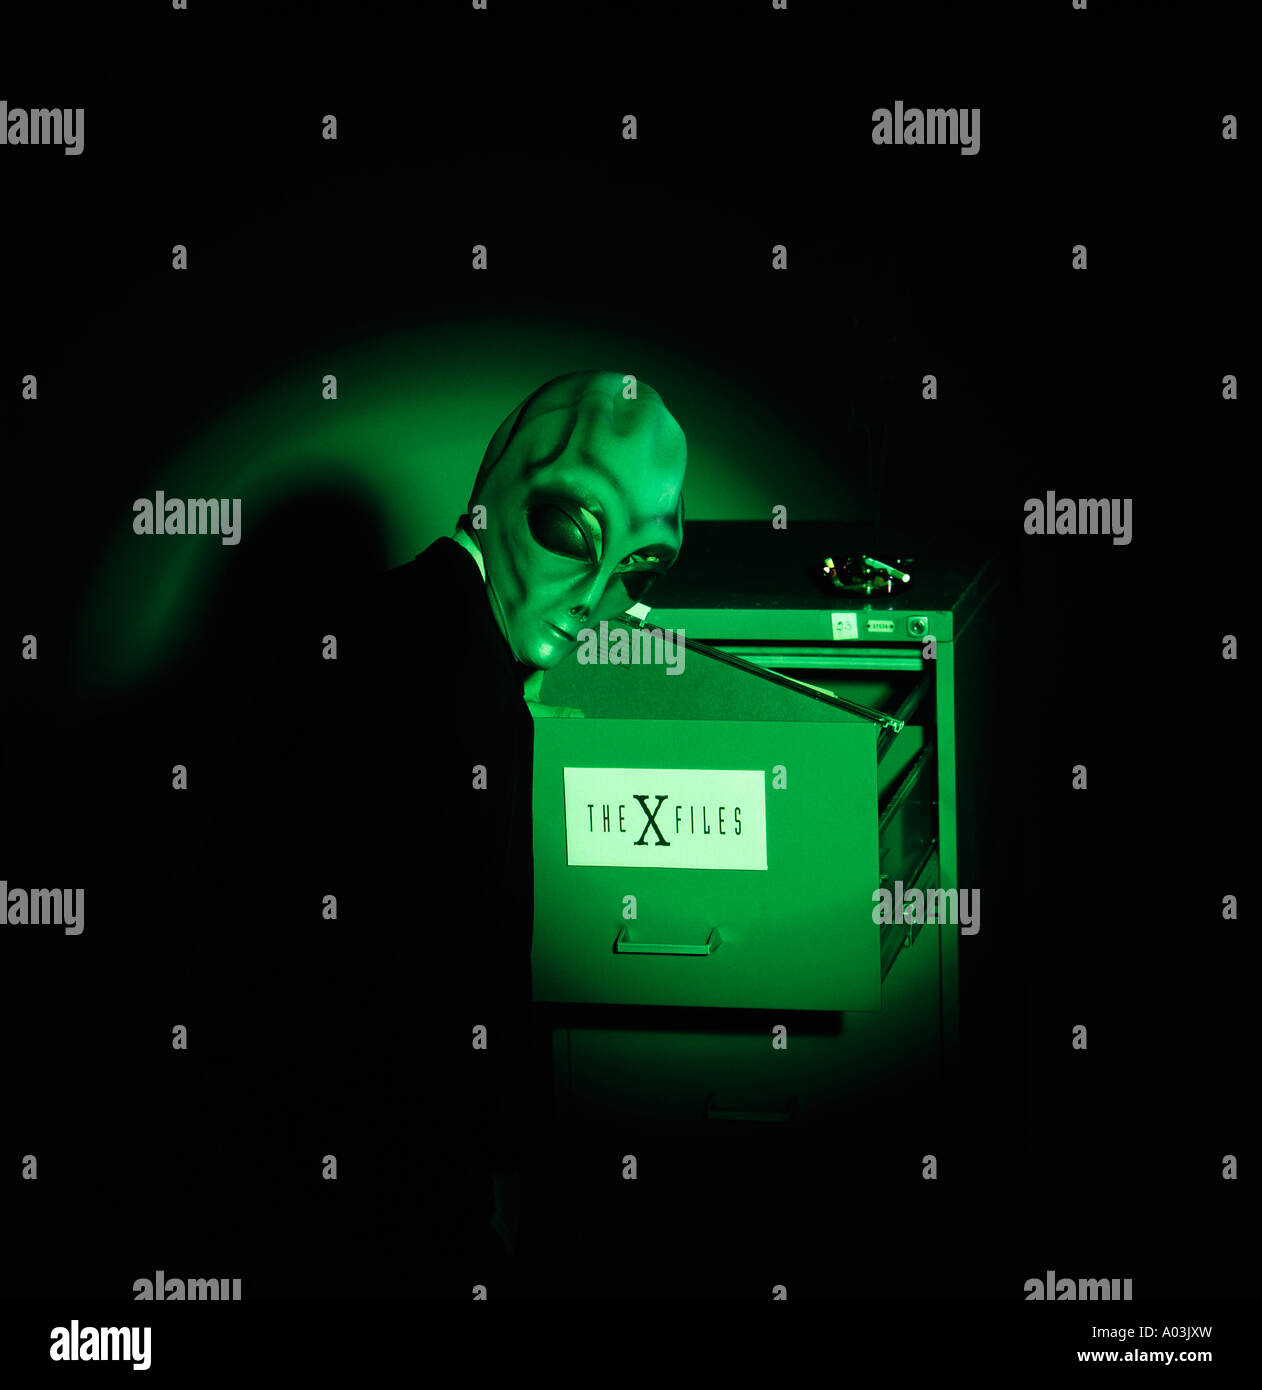 Alien looking for the x files - Stock Image